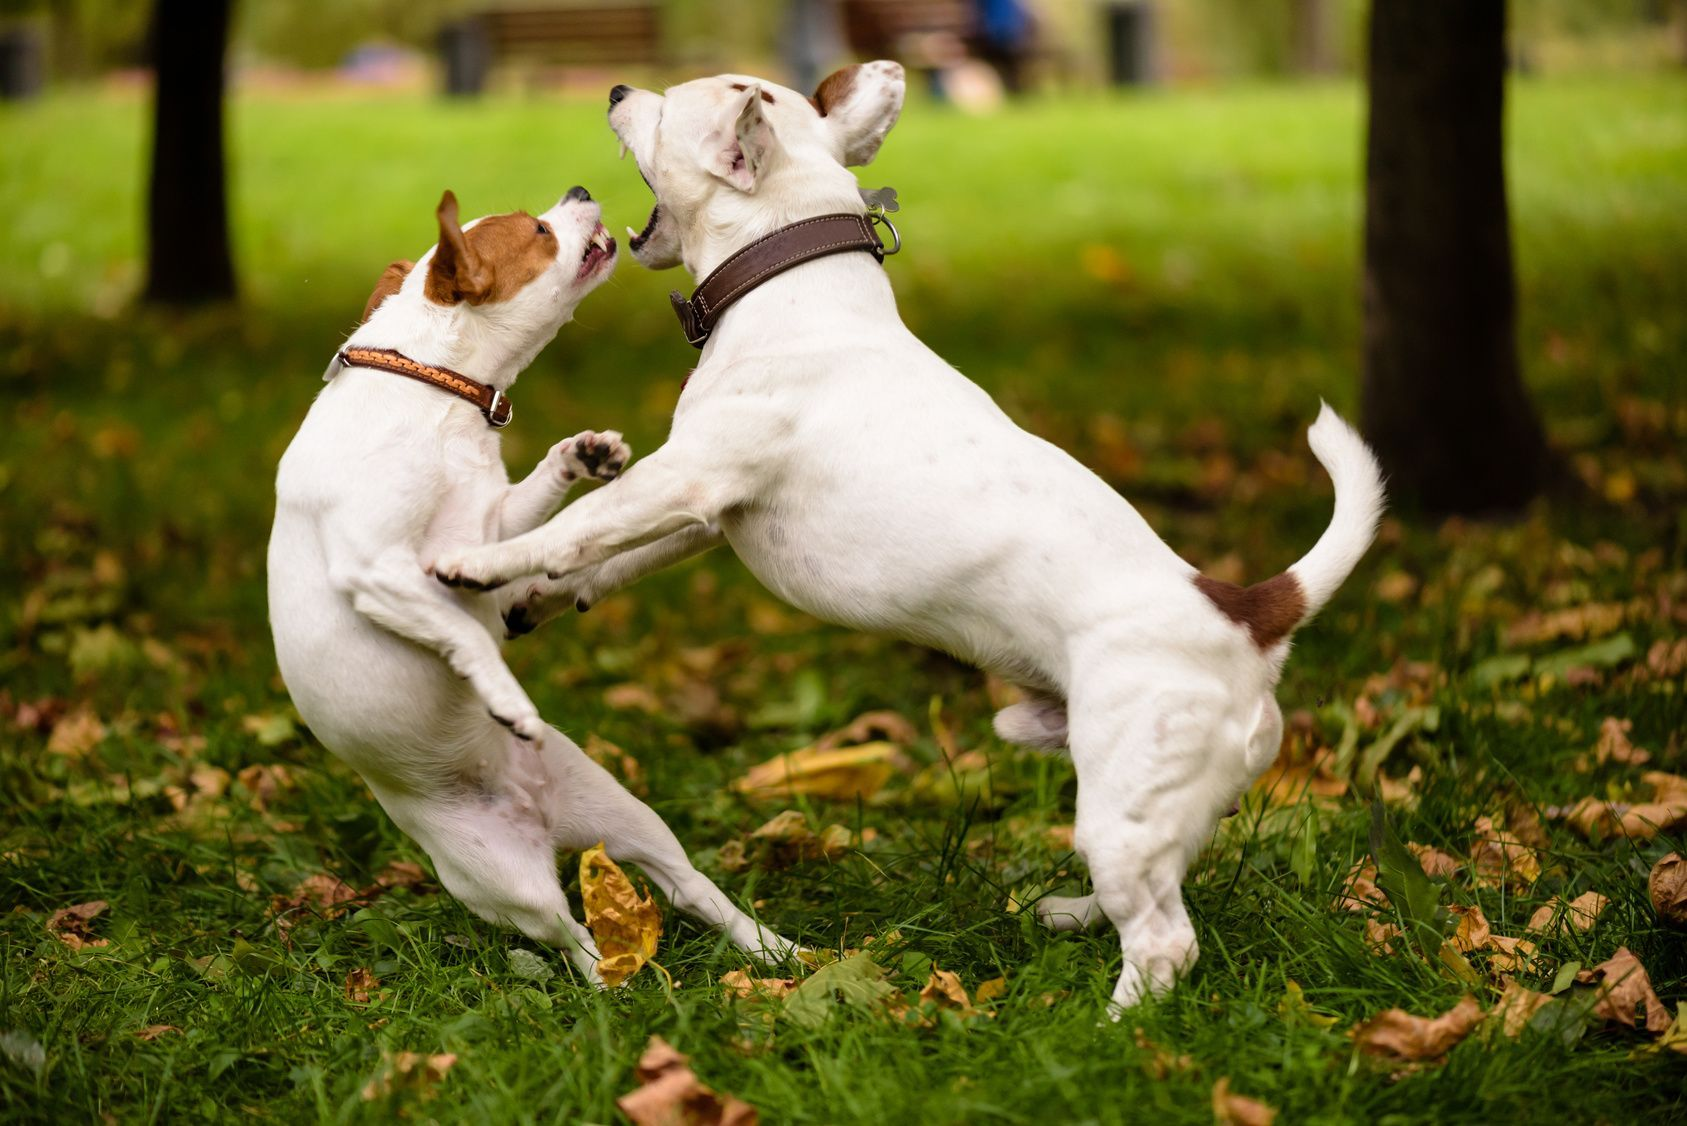 Dance of two dogs.  Pair of Jack Russell Terrier playing love game